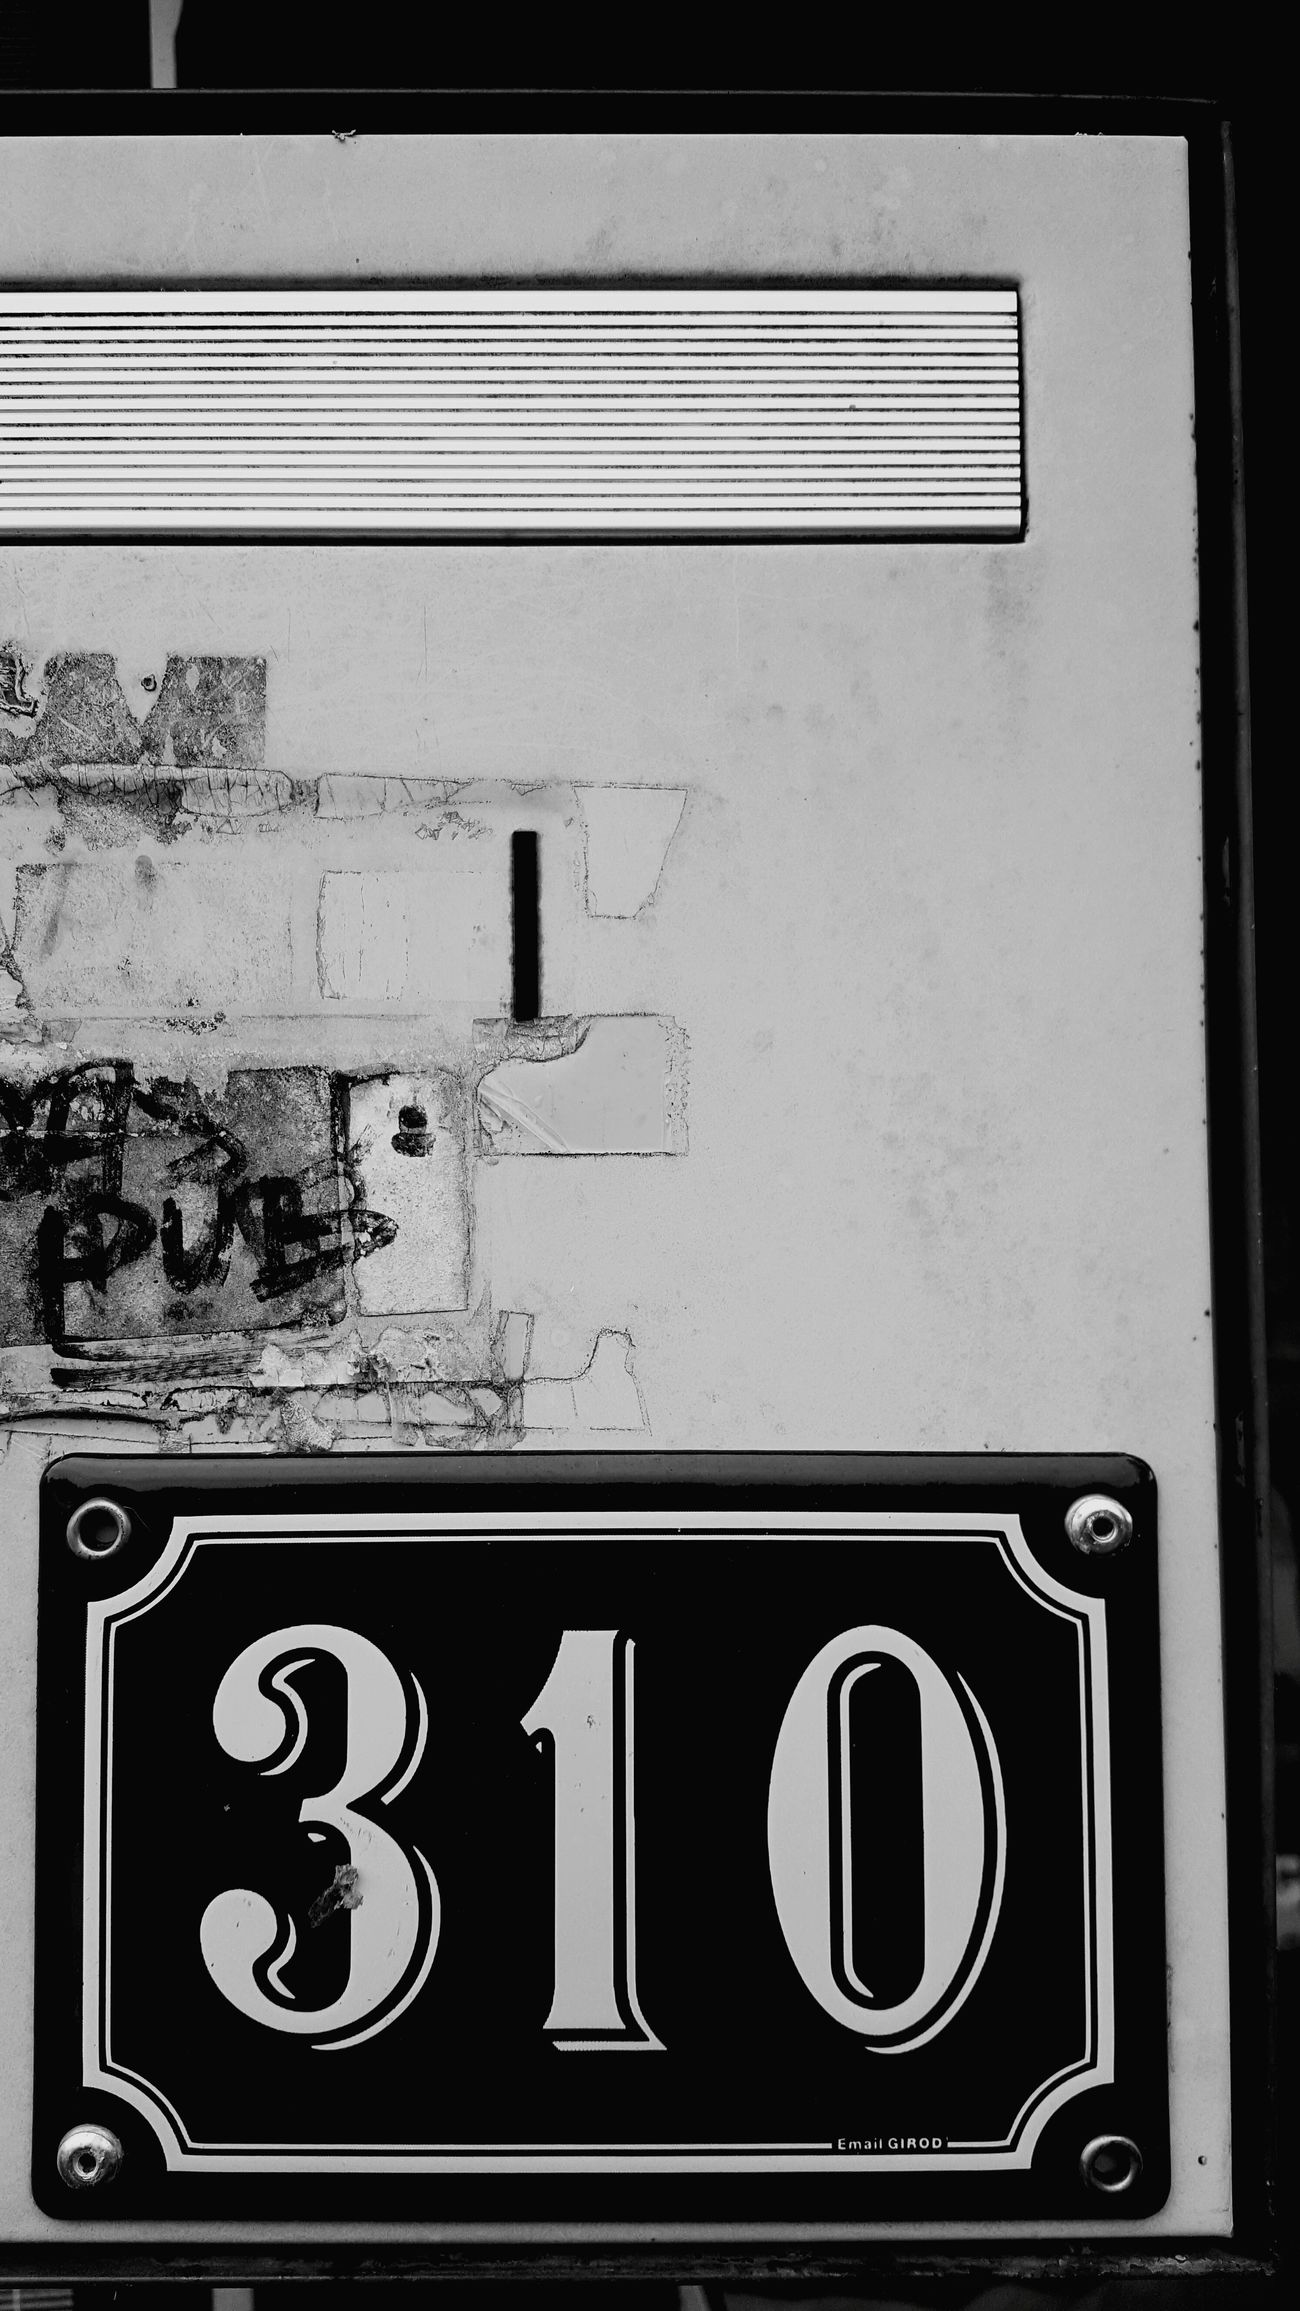 Nice ! 310 followers !! Wow 😊😘 Mobilephotography The Week On EyeEem No Add Getting Inspired Smartphonephotography Letterbox Mailbox Number 310 Followers Close-up From My Point Of View Eye4photography  Taking Photos 310 Followers